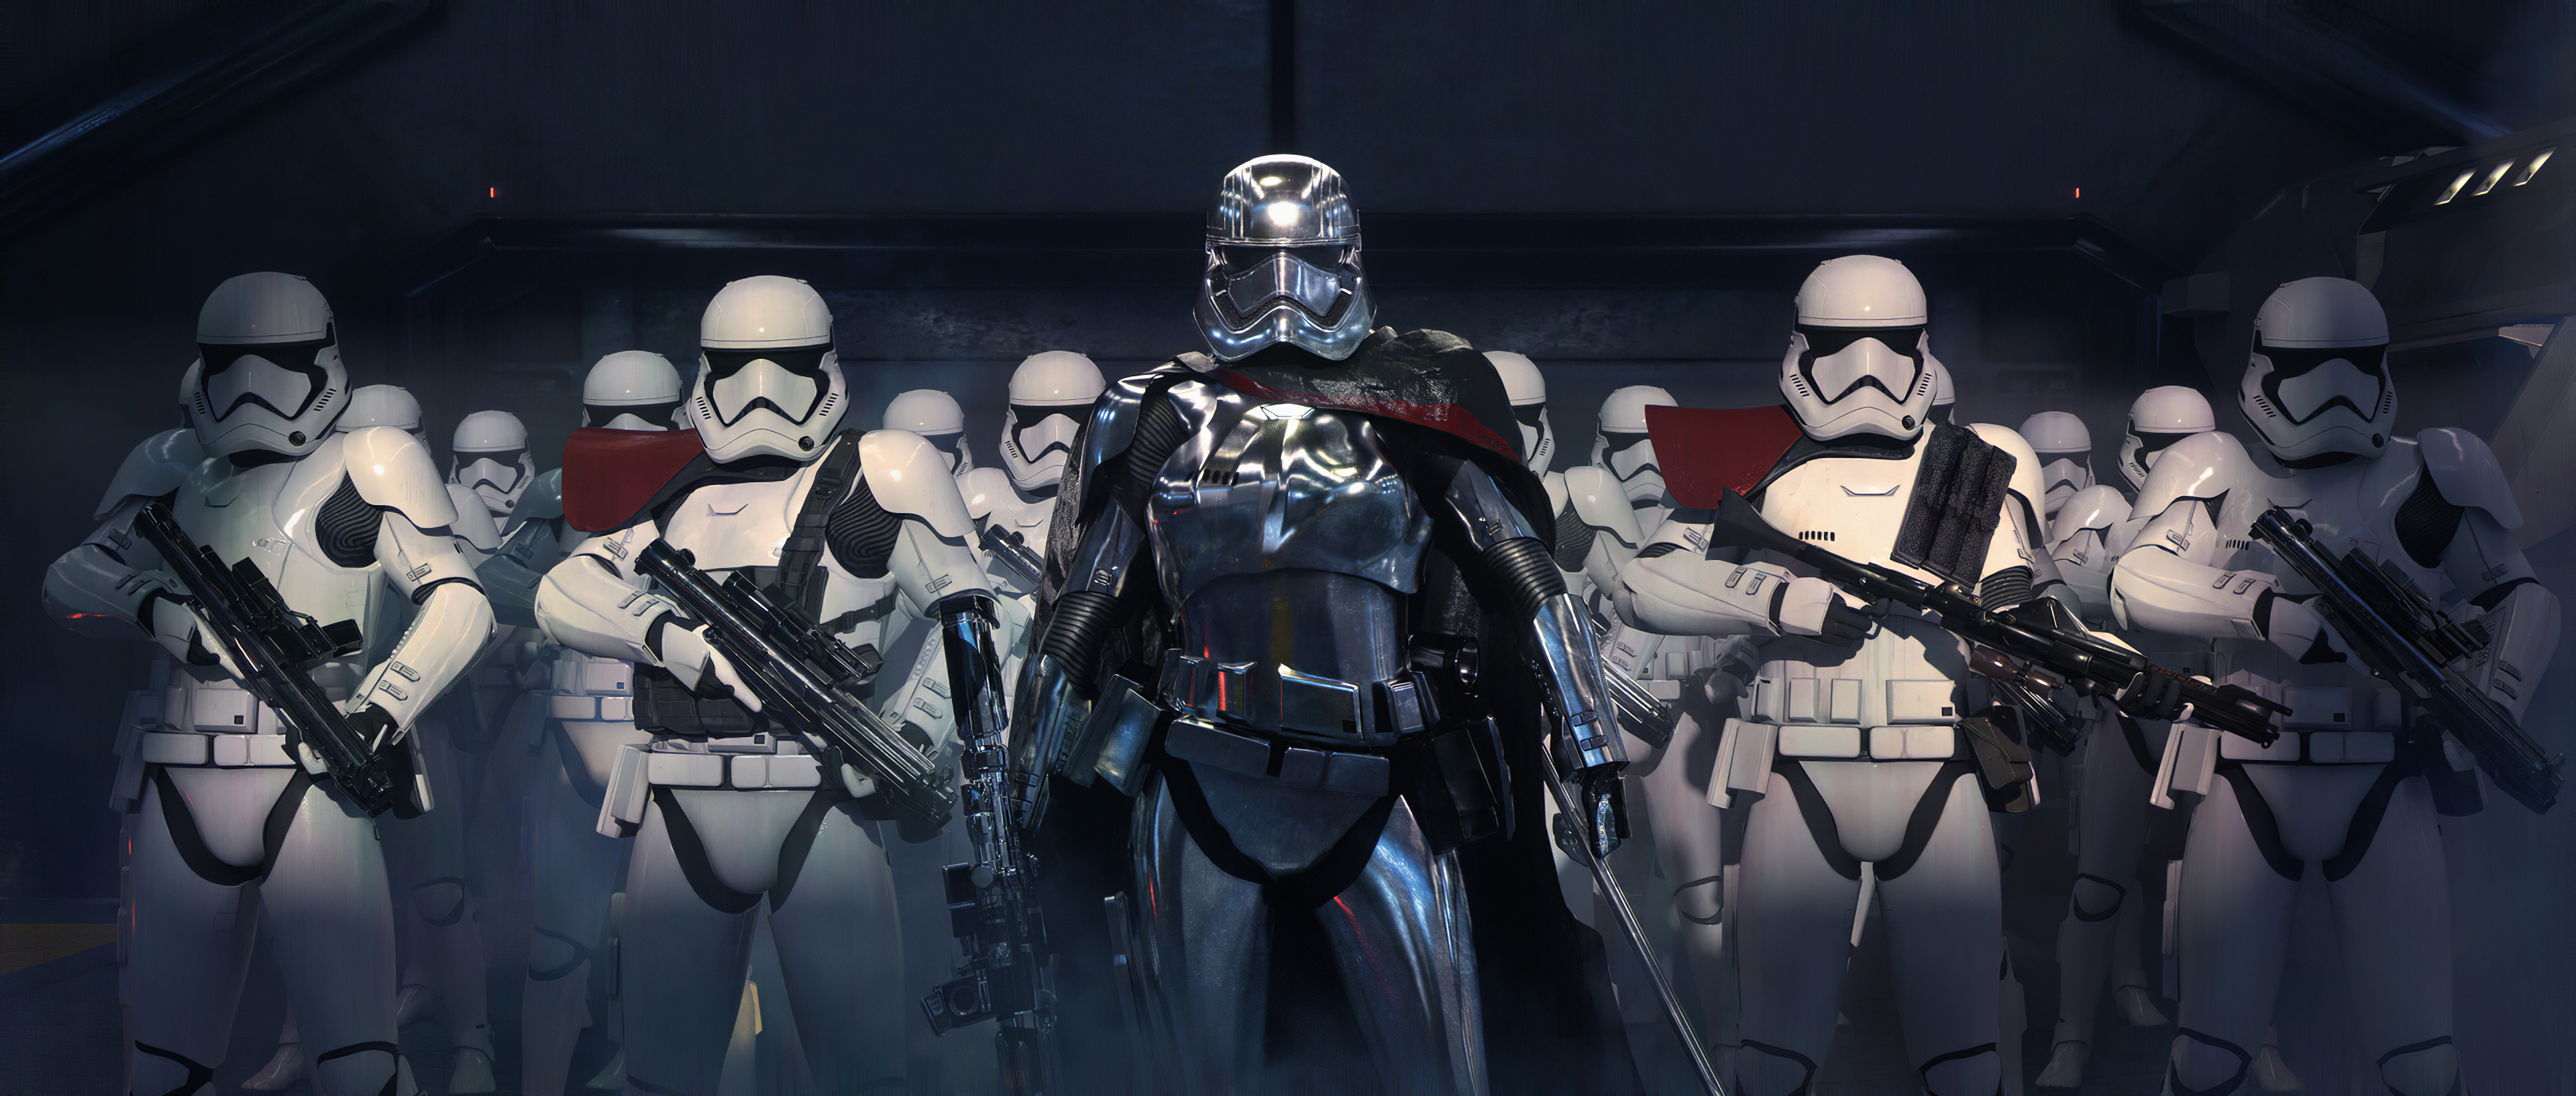 captain phasma 1589579275 - Captain Phasma - captain phasma wallpapers, Captain Phasma 4k wallpapers